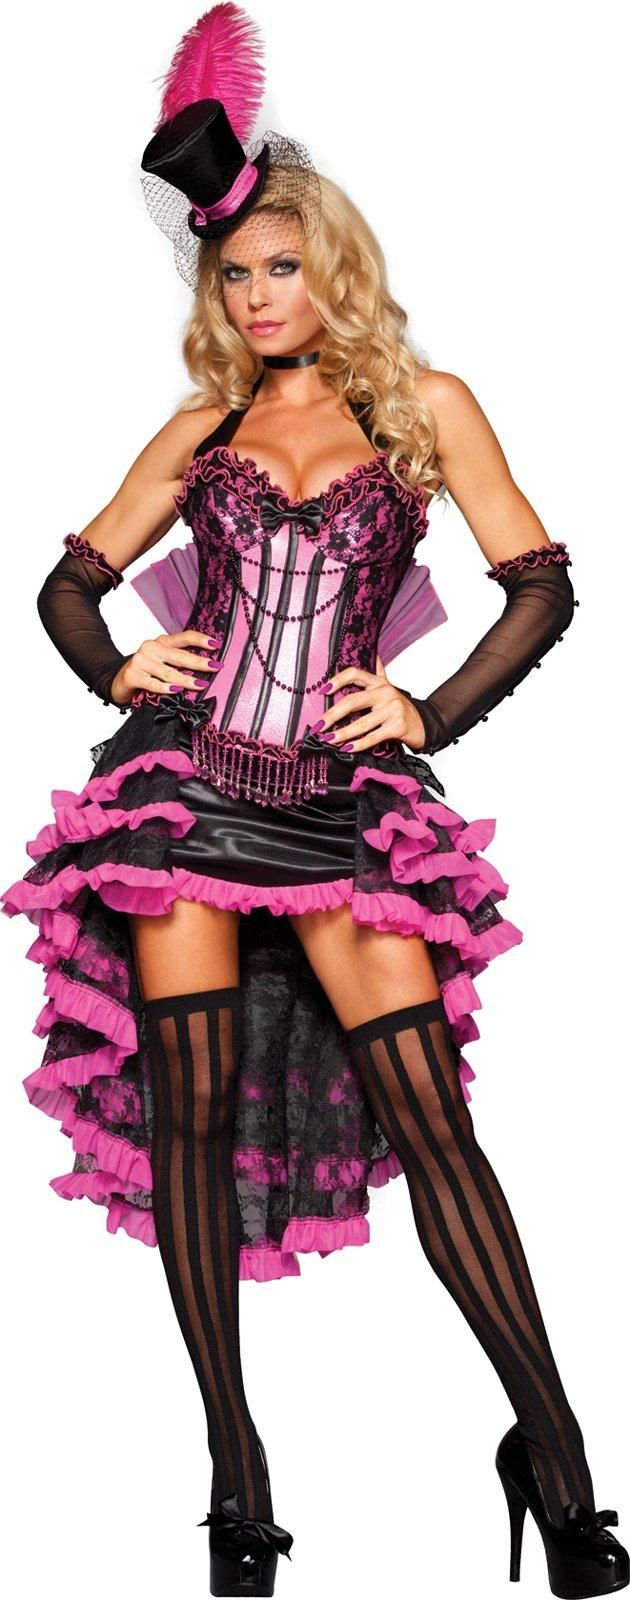 Burlesque Beauty Adult Costume from Buycostumes.com